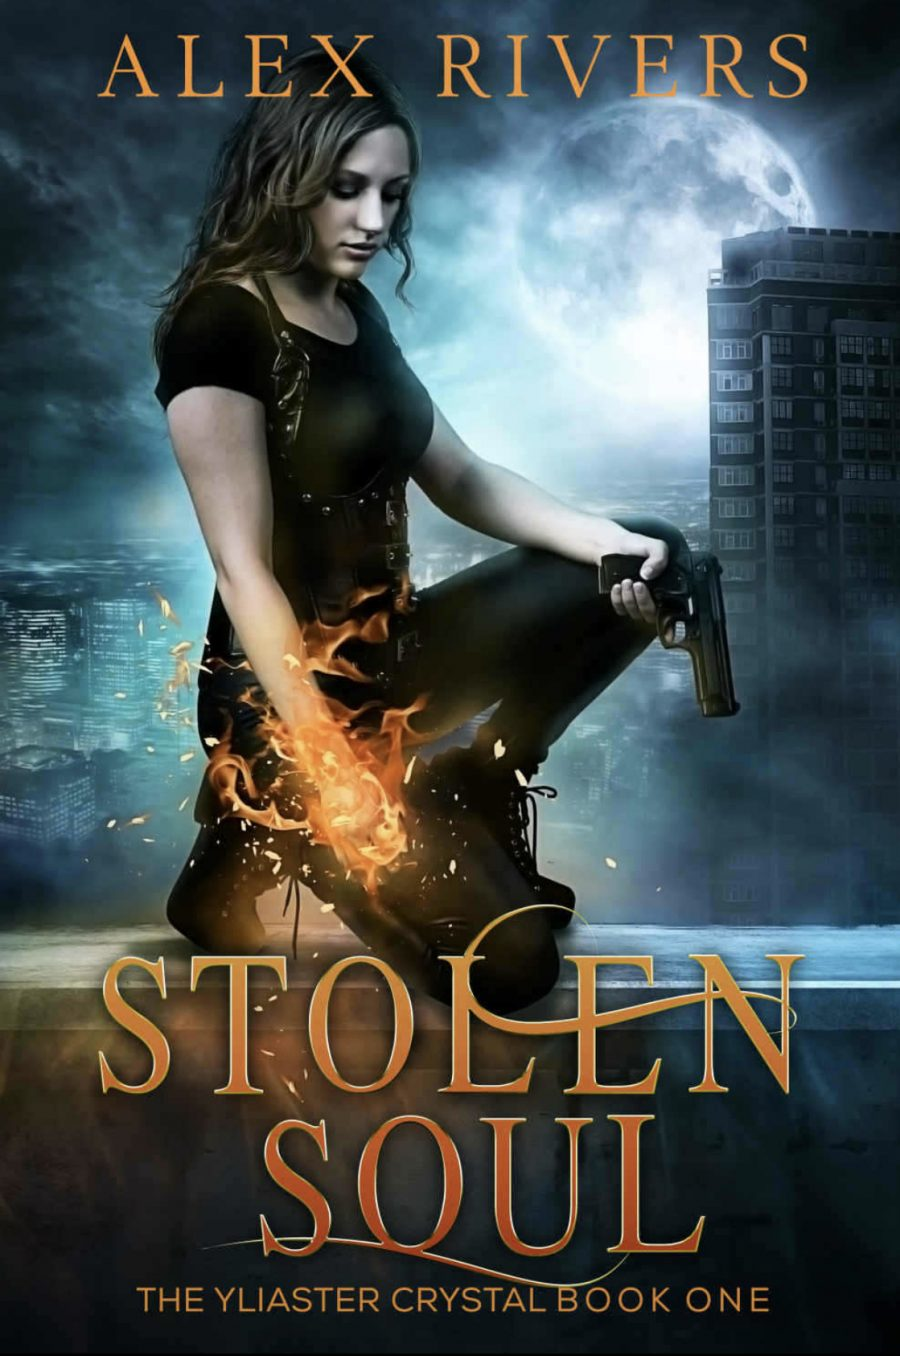 Stolen Soul (The Yliaster Crystal - Book 1) by Alex Rivers - A Book Review #BookReview #UrbanFantasy #UF #KindleUnlimited #KU #Dragons #Vampires #Thieves